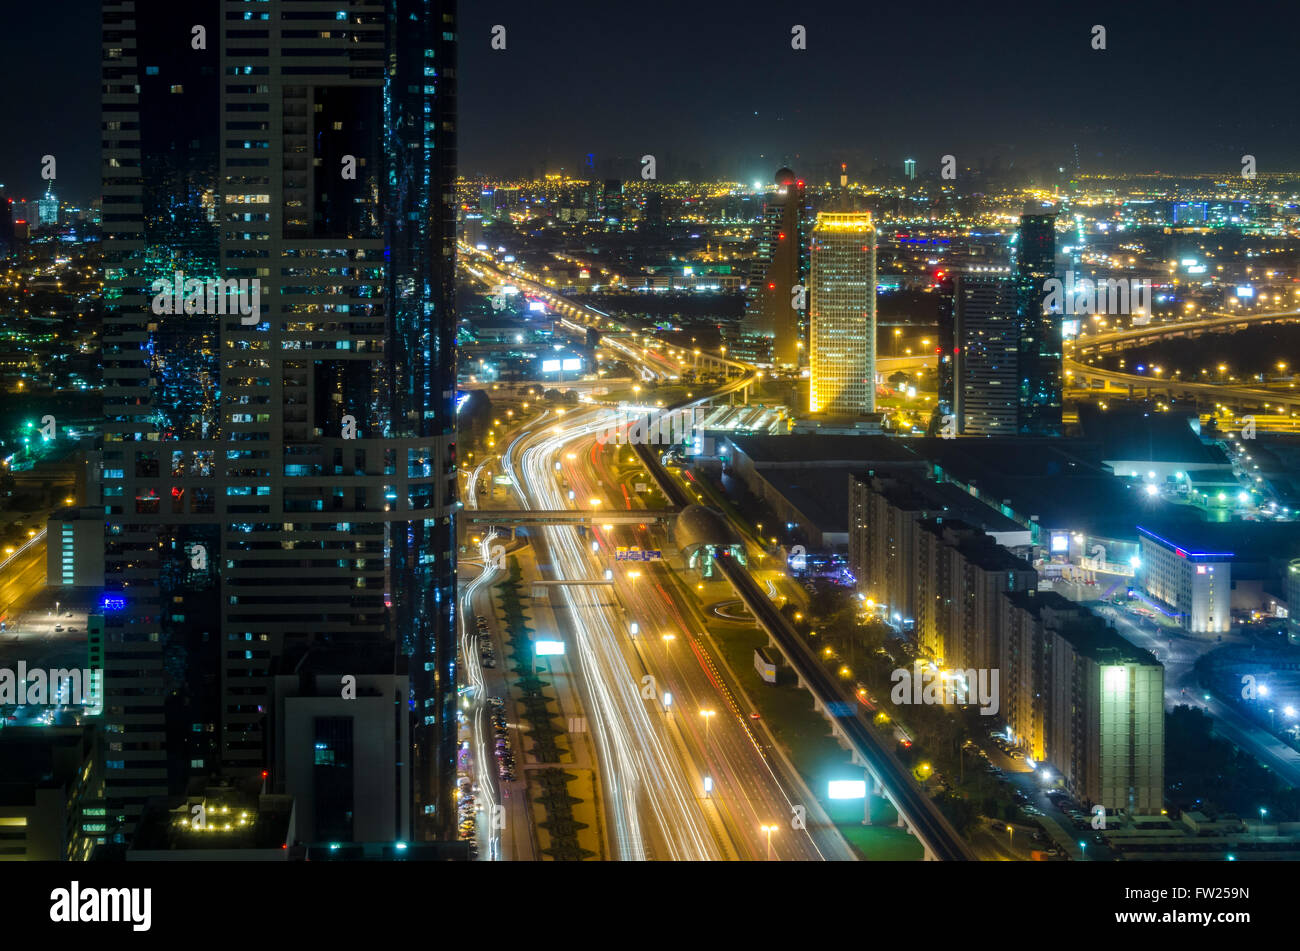 Dubai at night looking East along Sheikh Zayed Road from Emirates Towers Metro Station - Stock Image